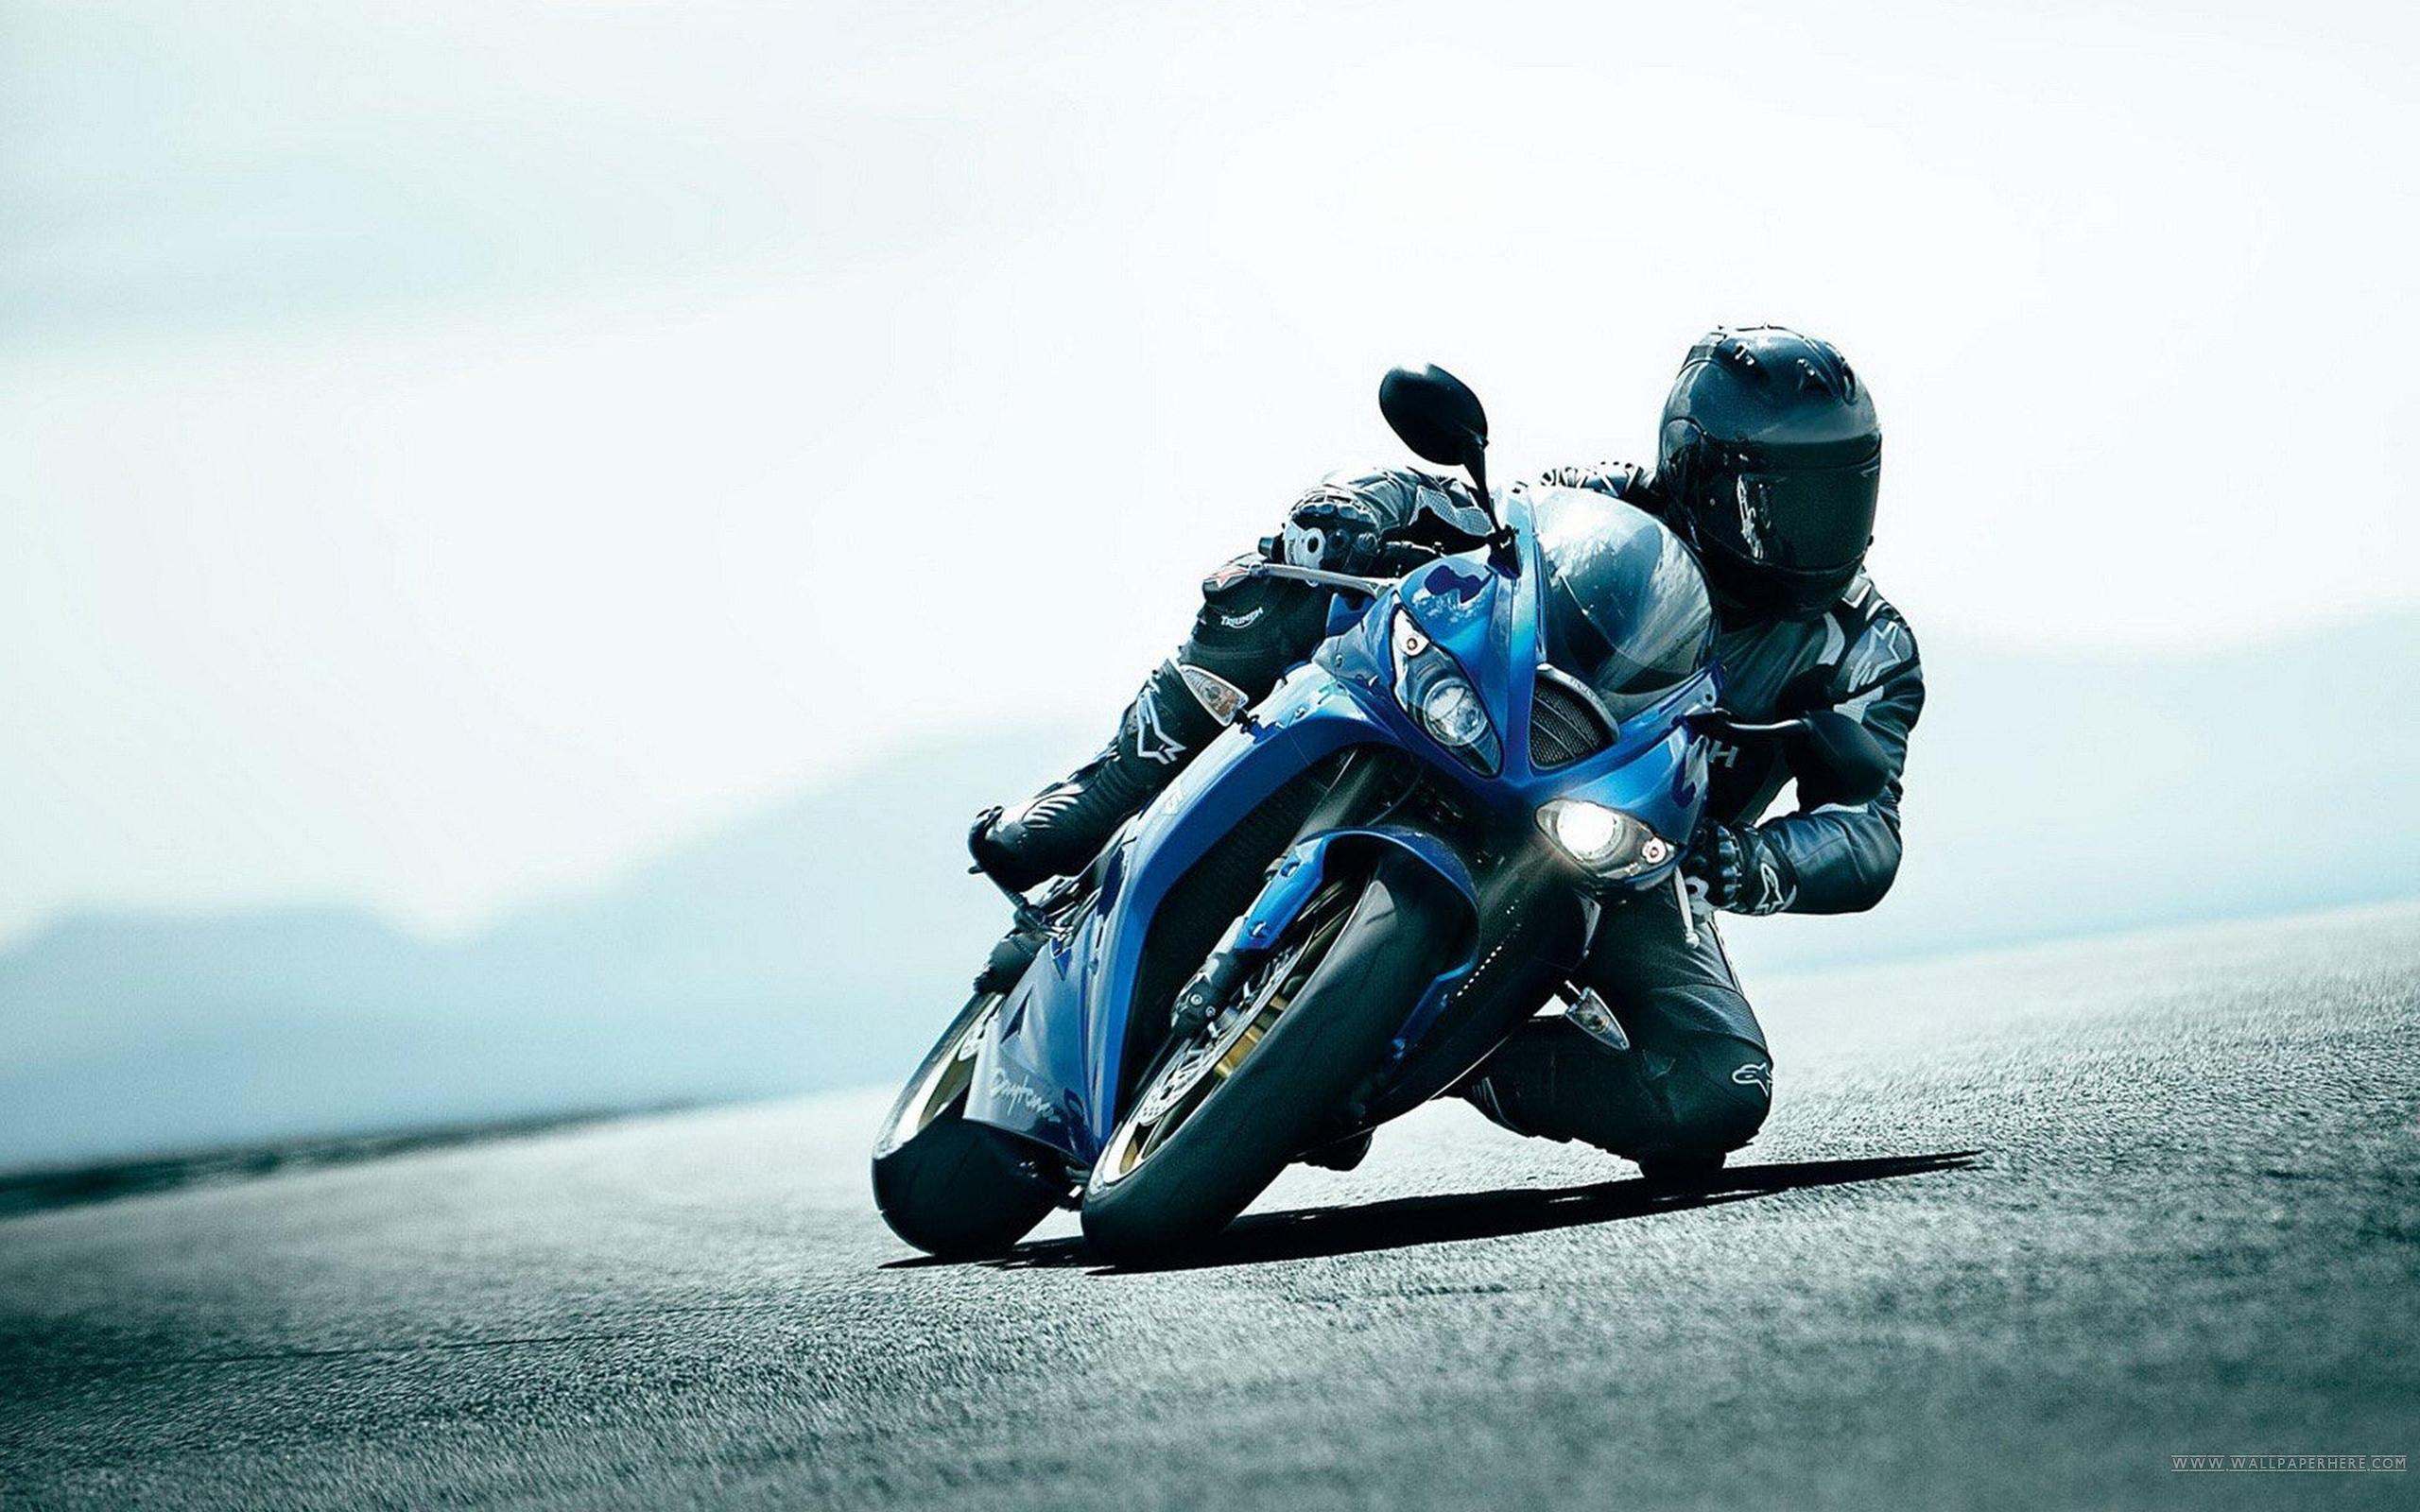 Following the click of the download button, right click on the image and select SAVE AS to complete your download. Filename : Sports Motorcycle Wallpaper